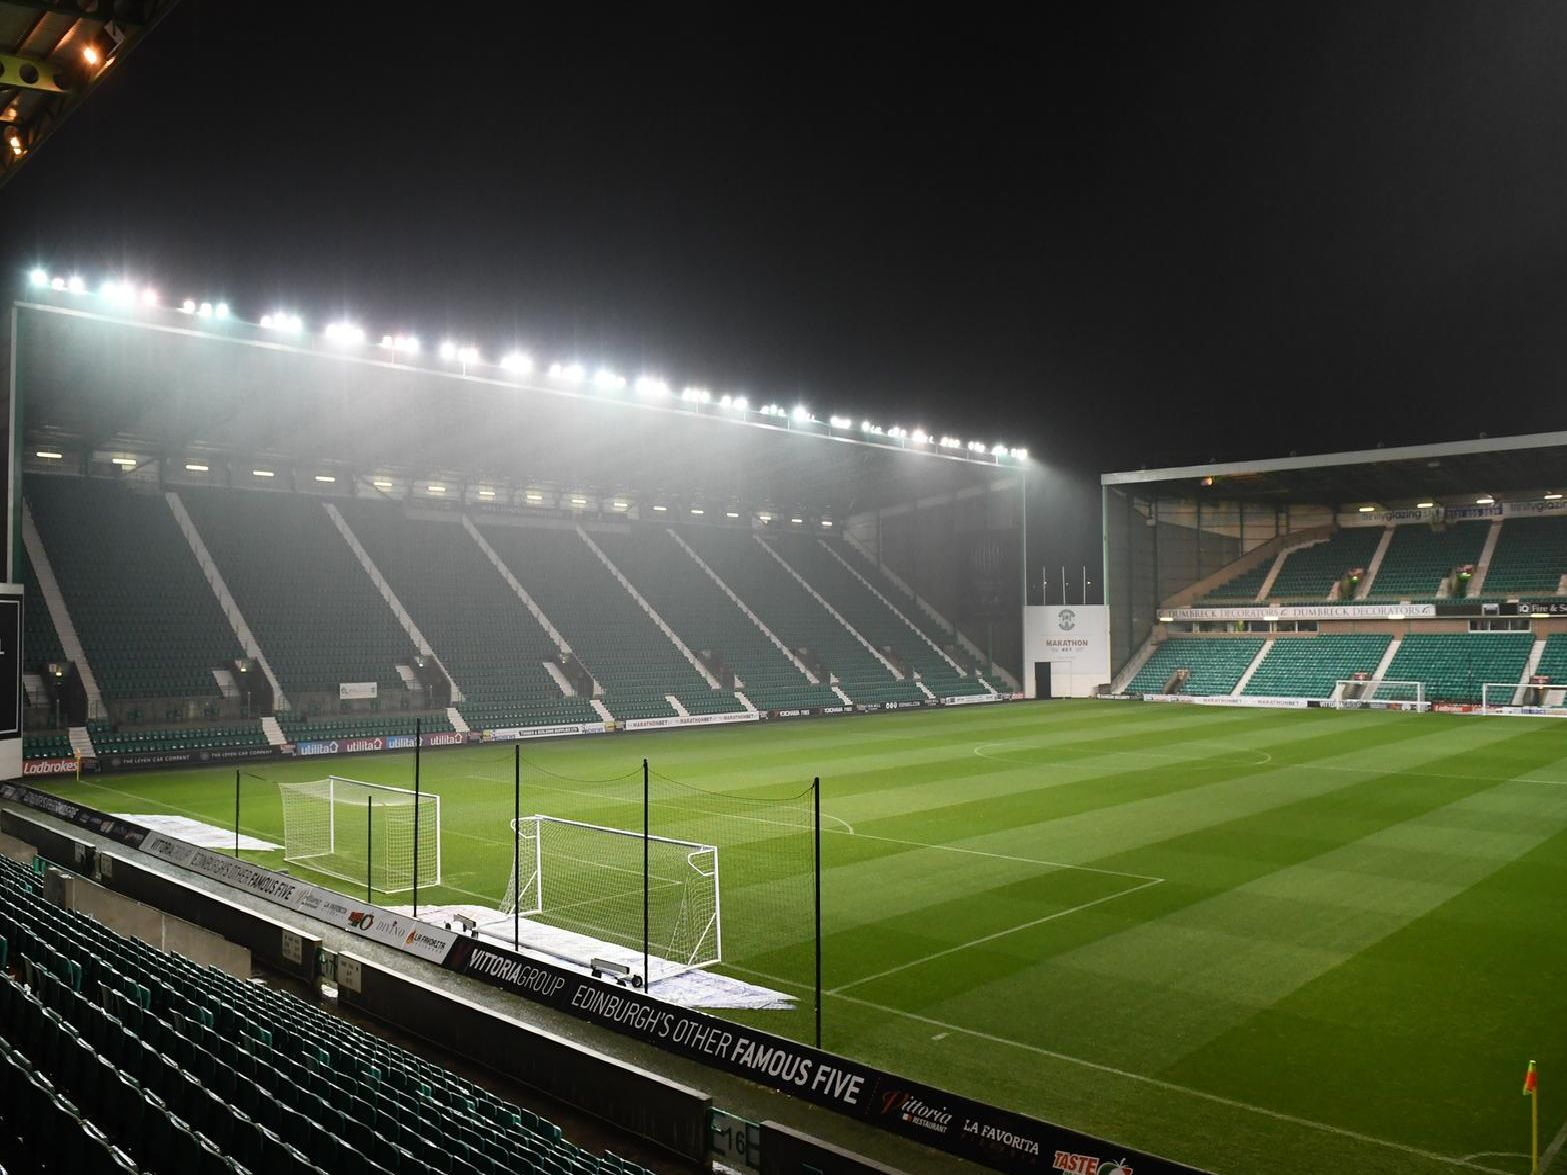 A general view of Easter Road at night.